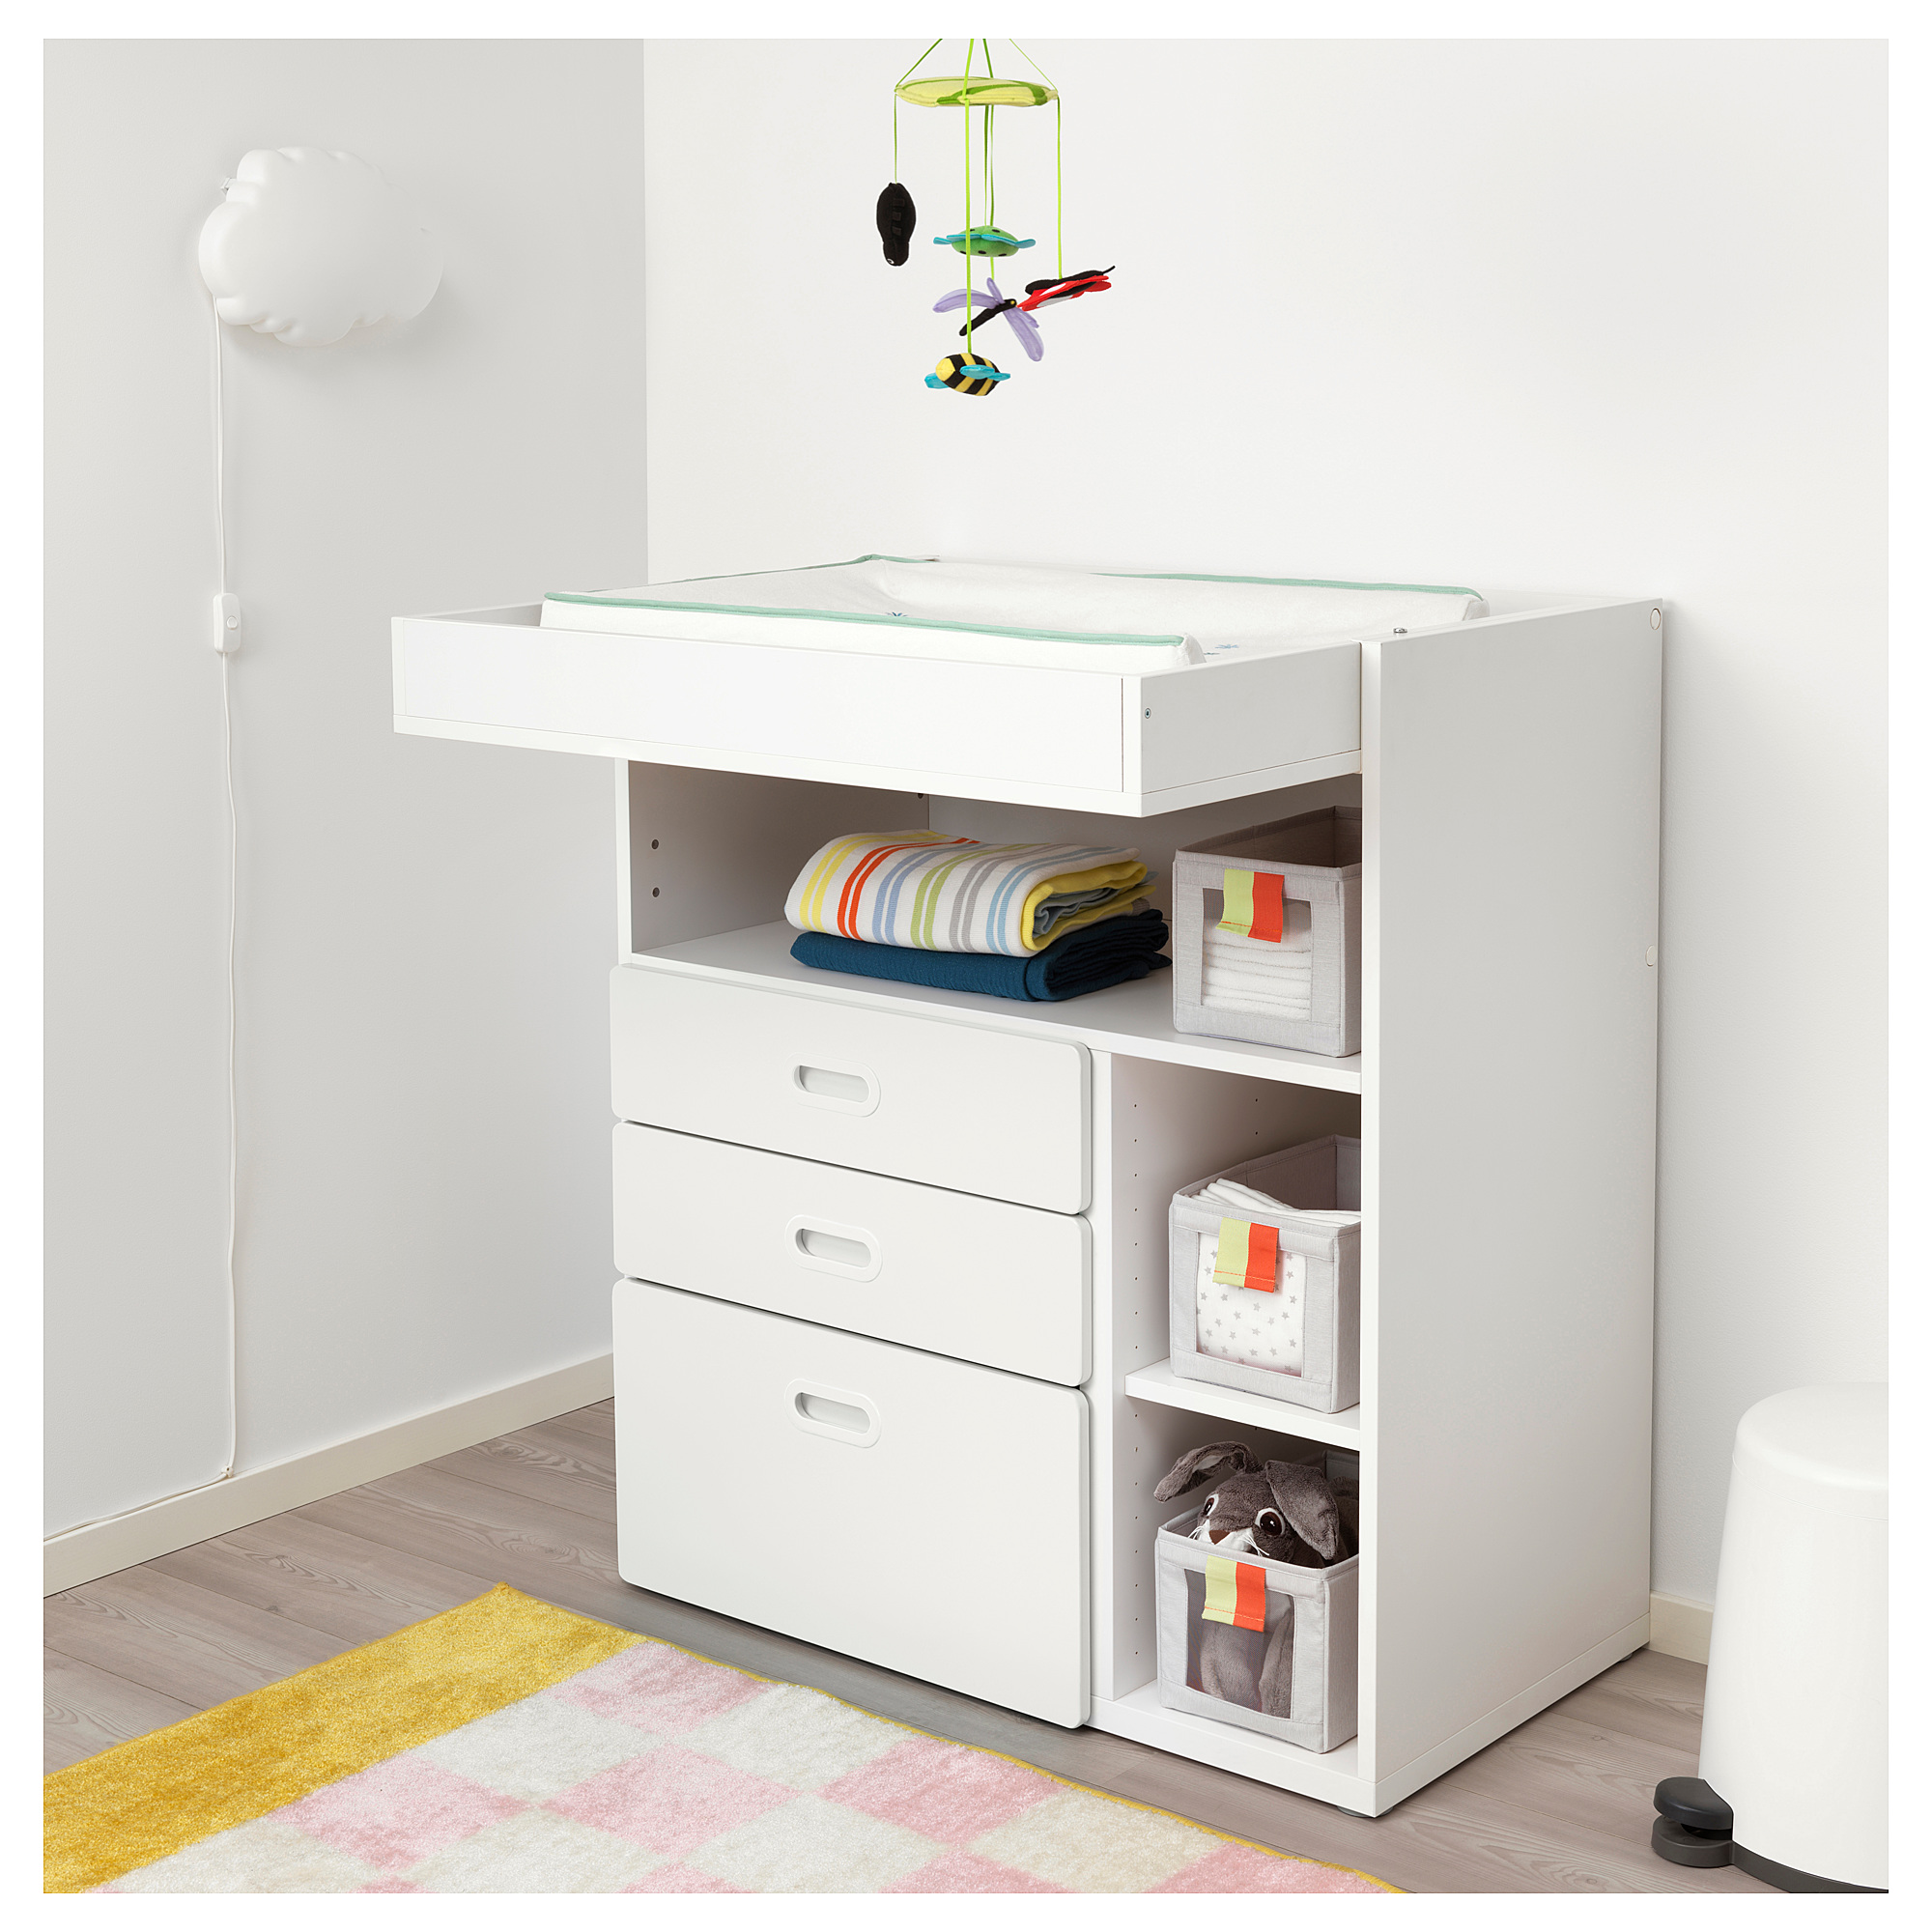 Ikea Stuva Fritids Changing Table With Drawers White White